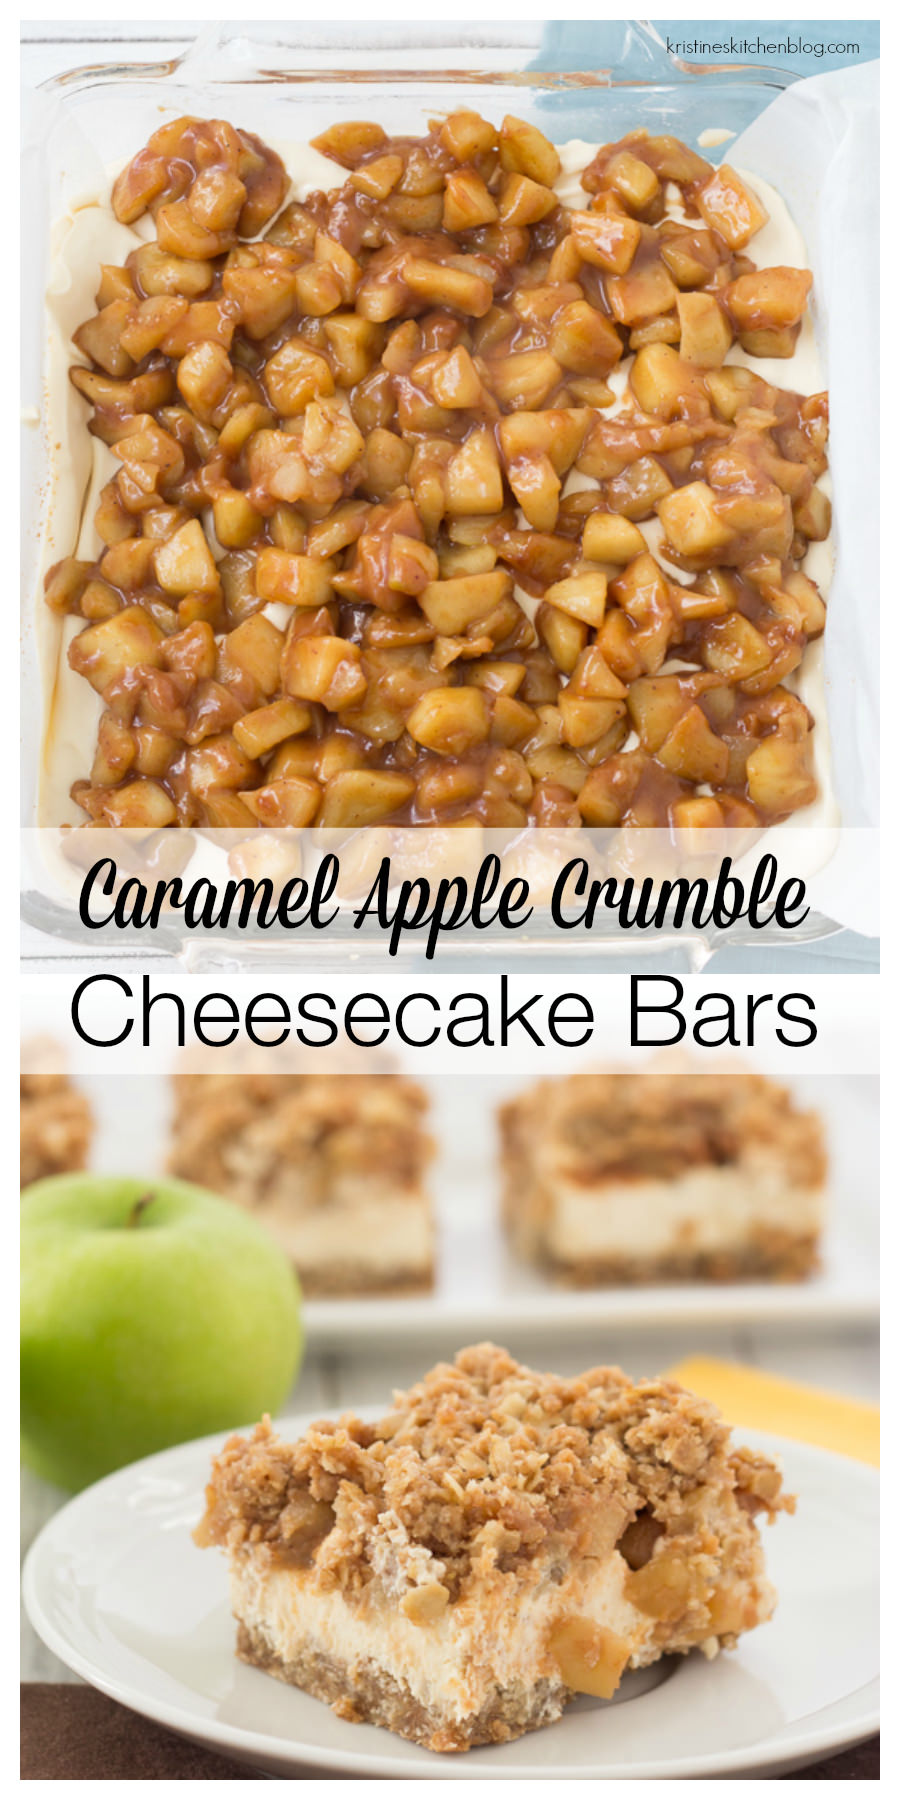 A caramelized oat crust, creamy Greek yogurt cheesecake, caramel apples, and crumb topping.  Gluten-free.